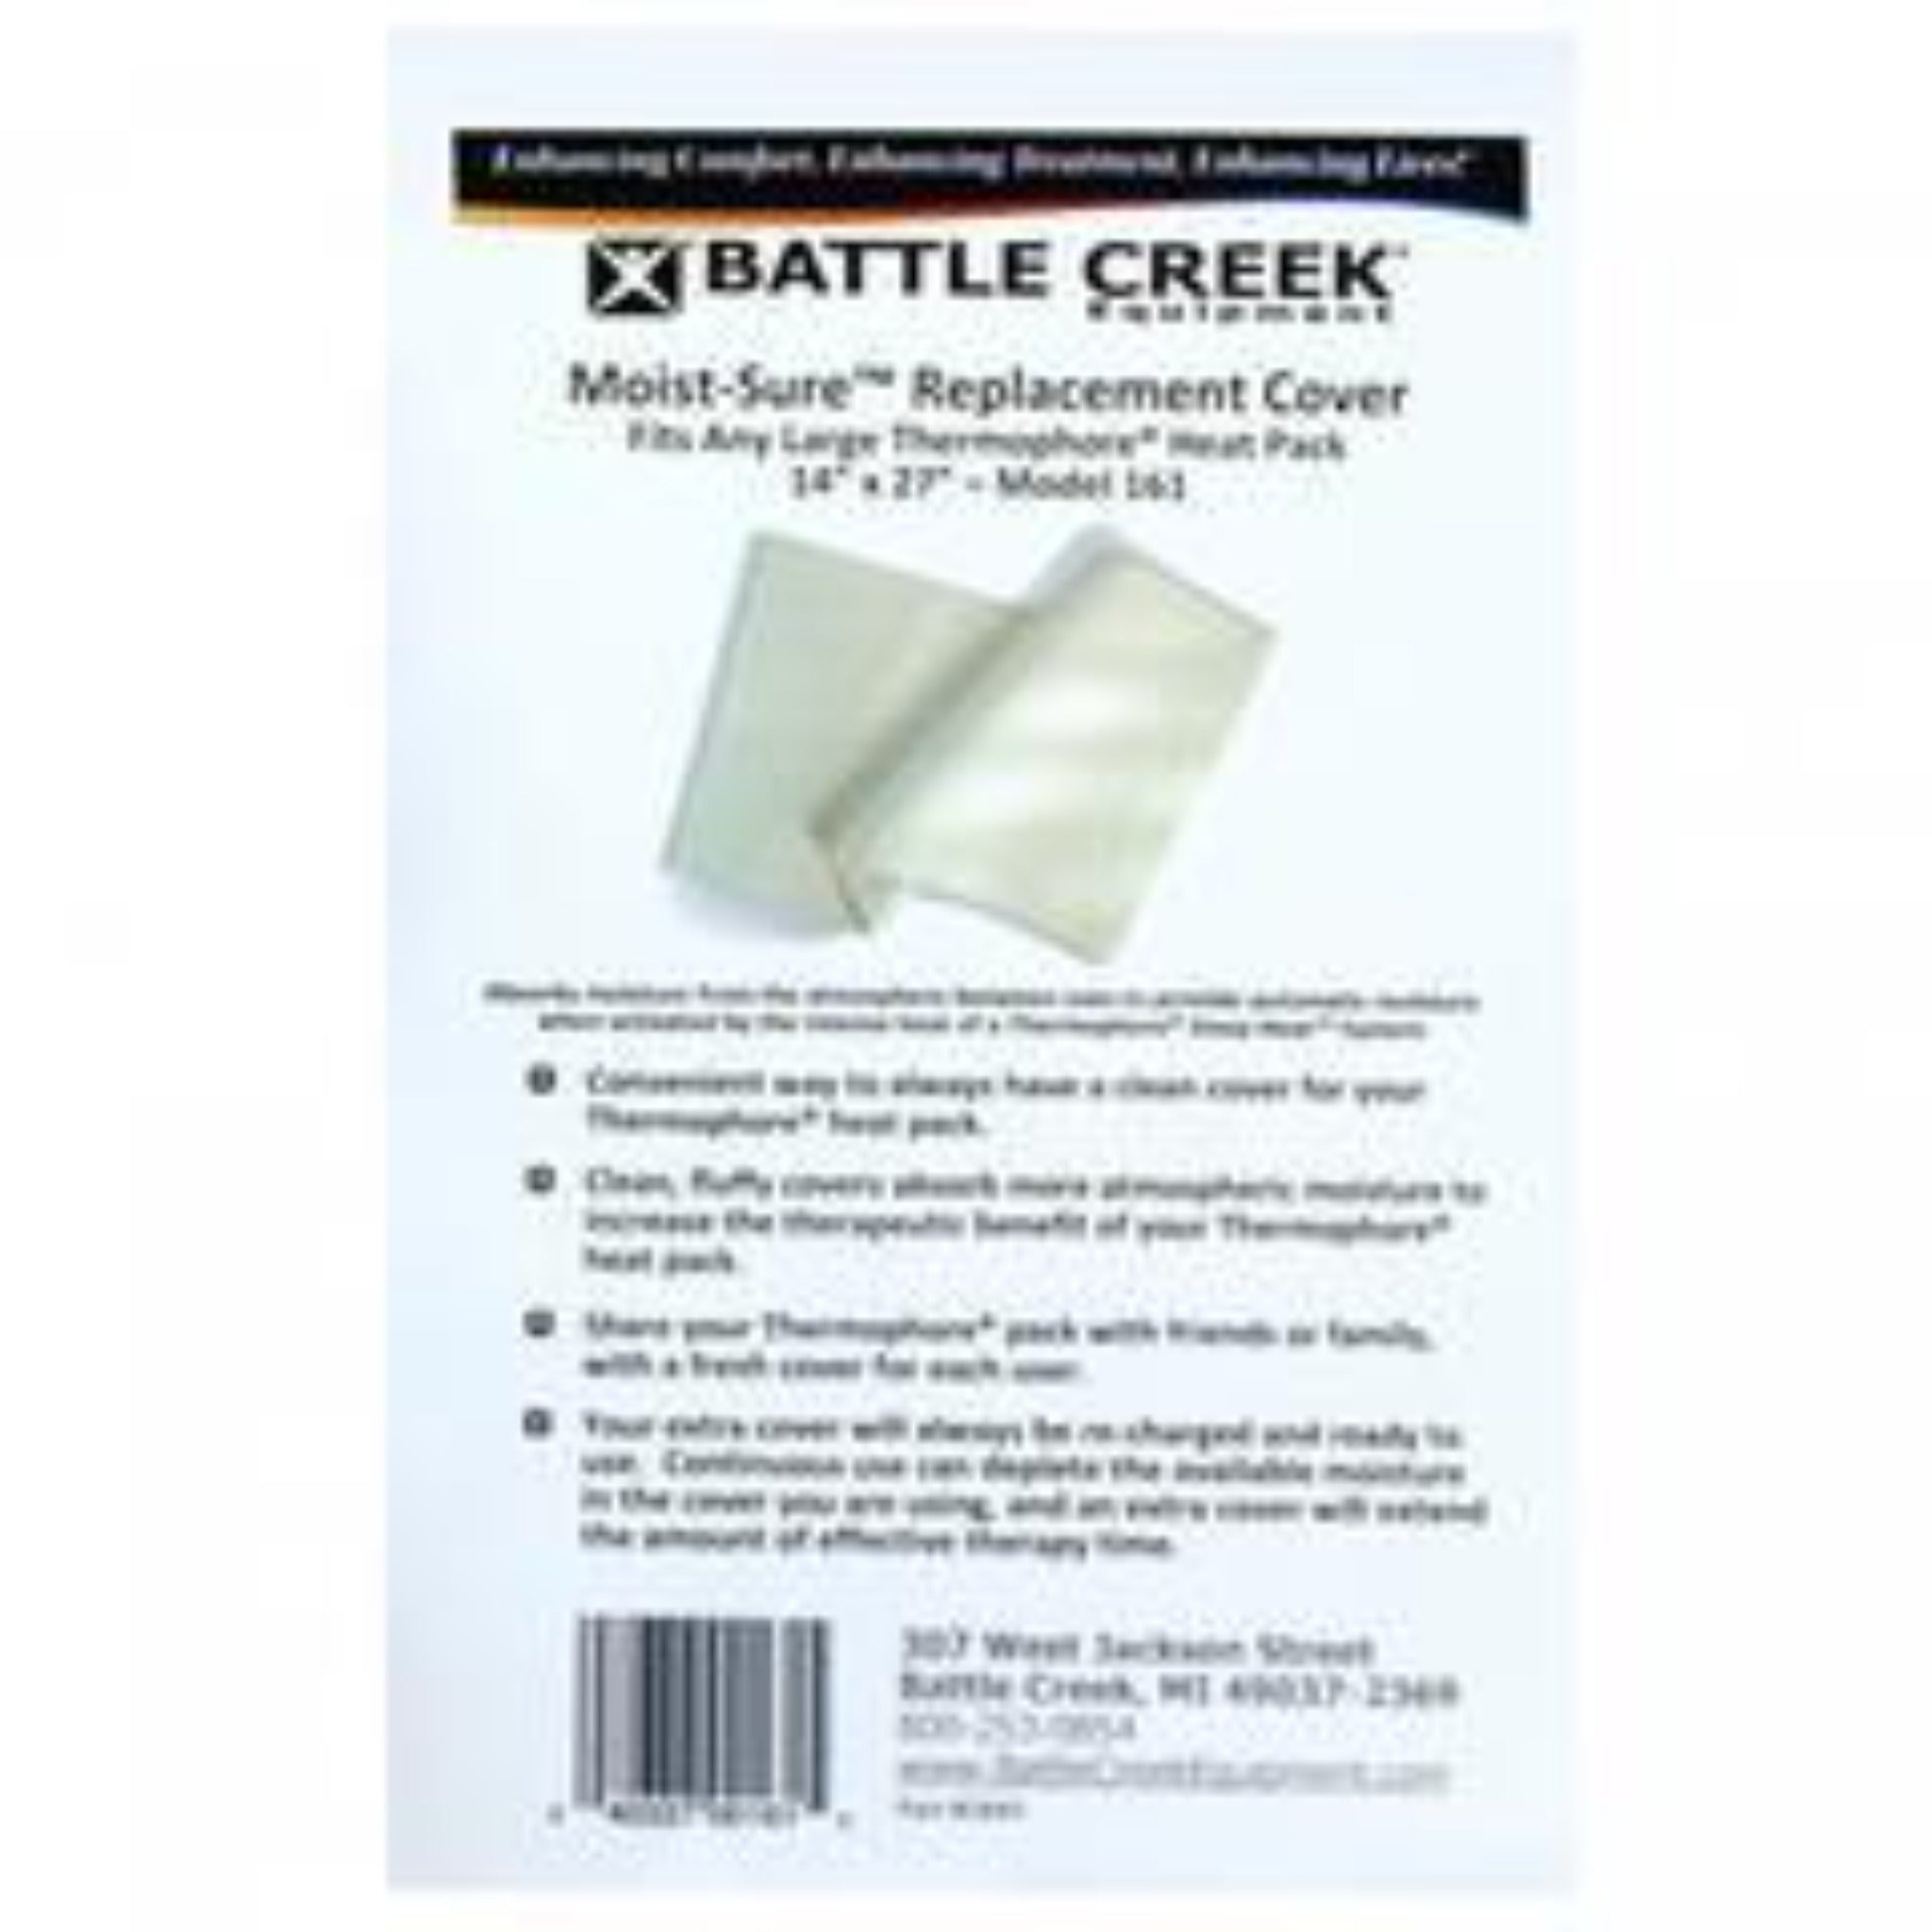 Battle Creek Thermophore Moist-Sure Replacement Cover